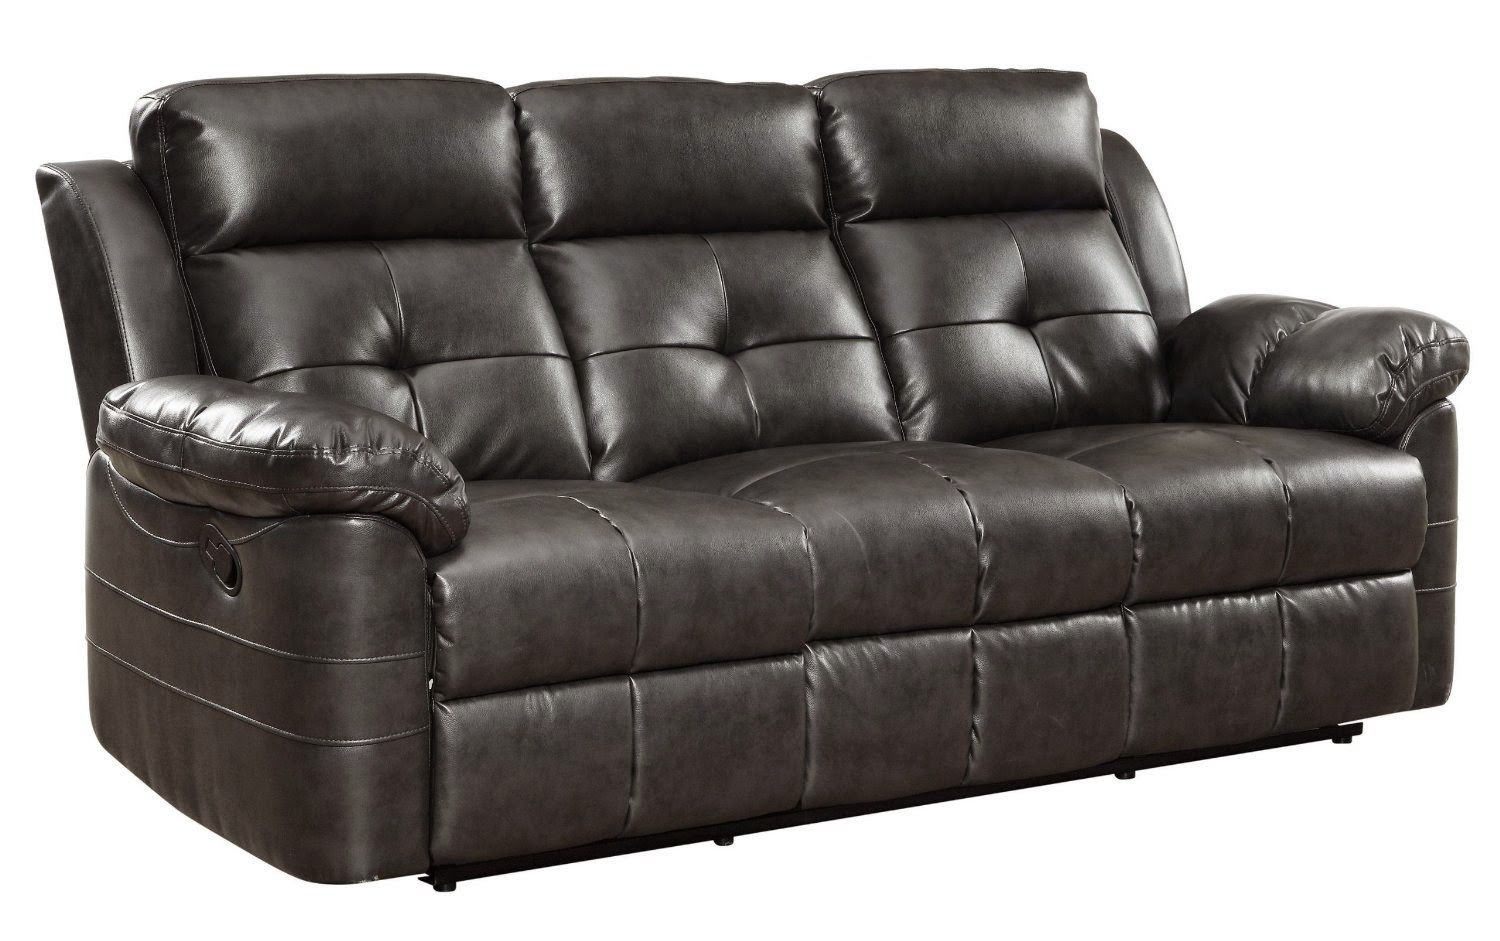 Himolla Chester Curved 3 Seater Manual Reclining Sofa Recliner